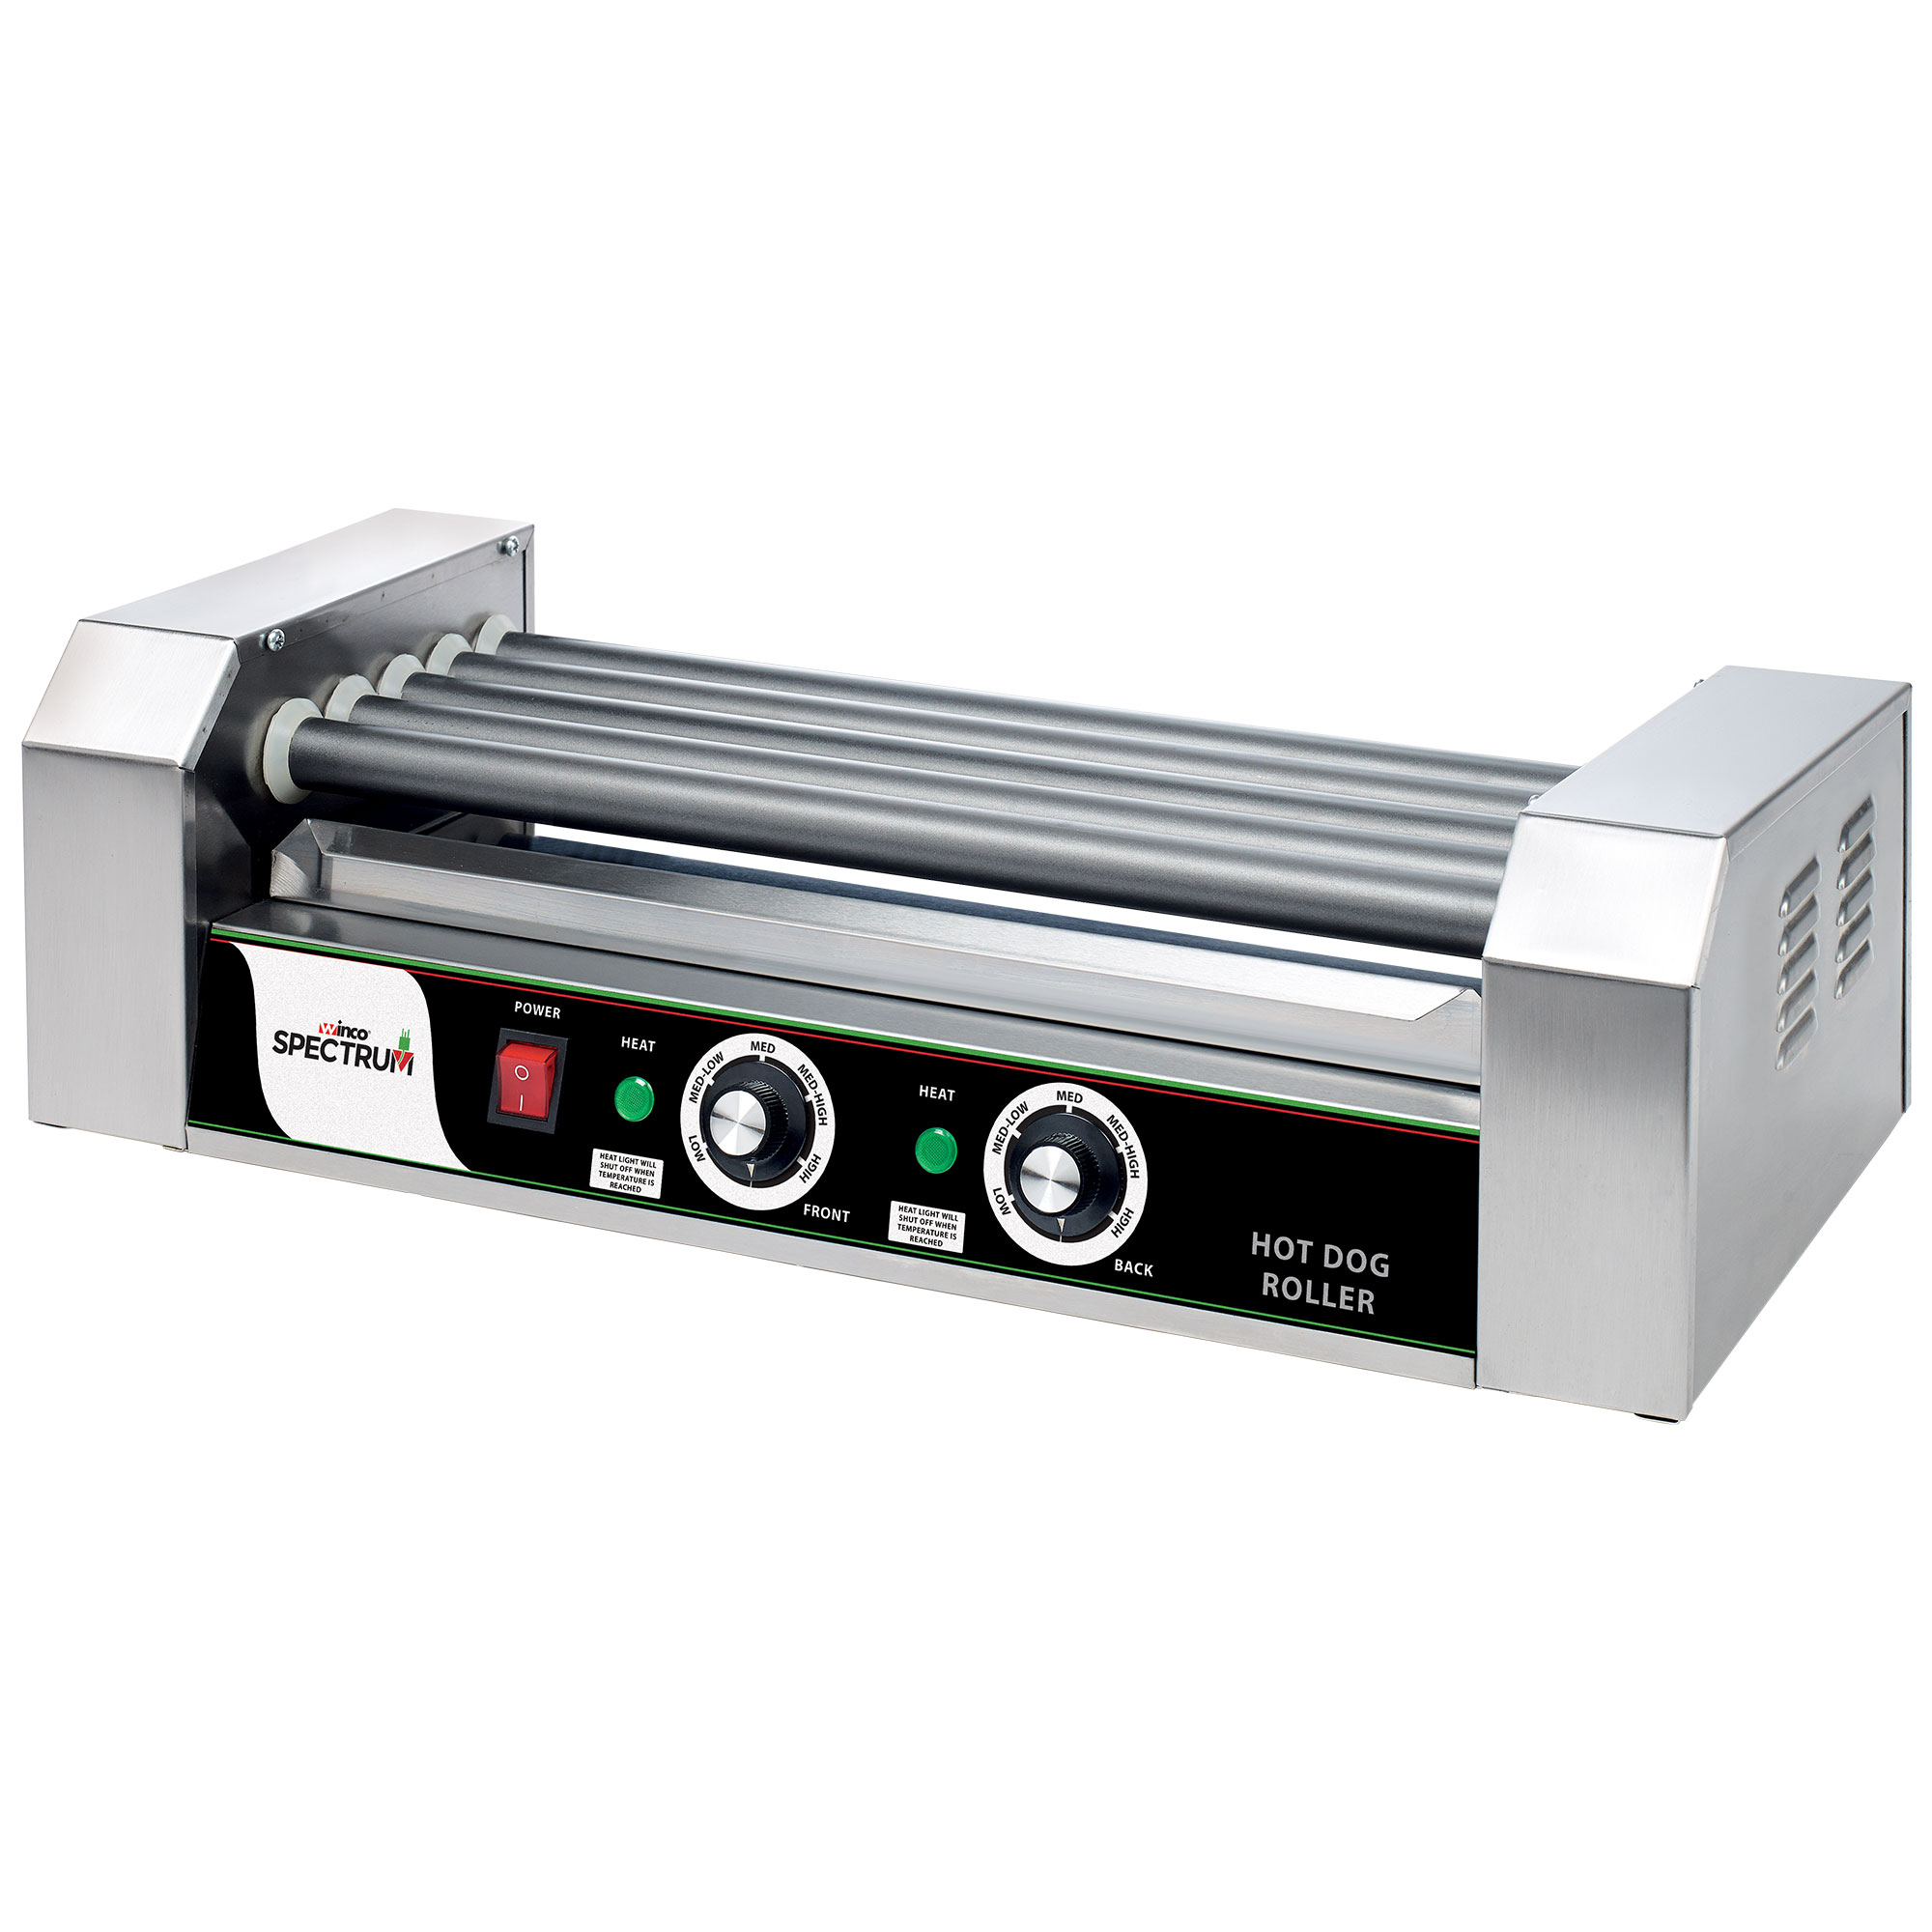 Winco EHDG-5R hot dog grill